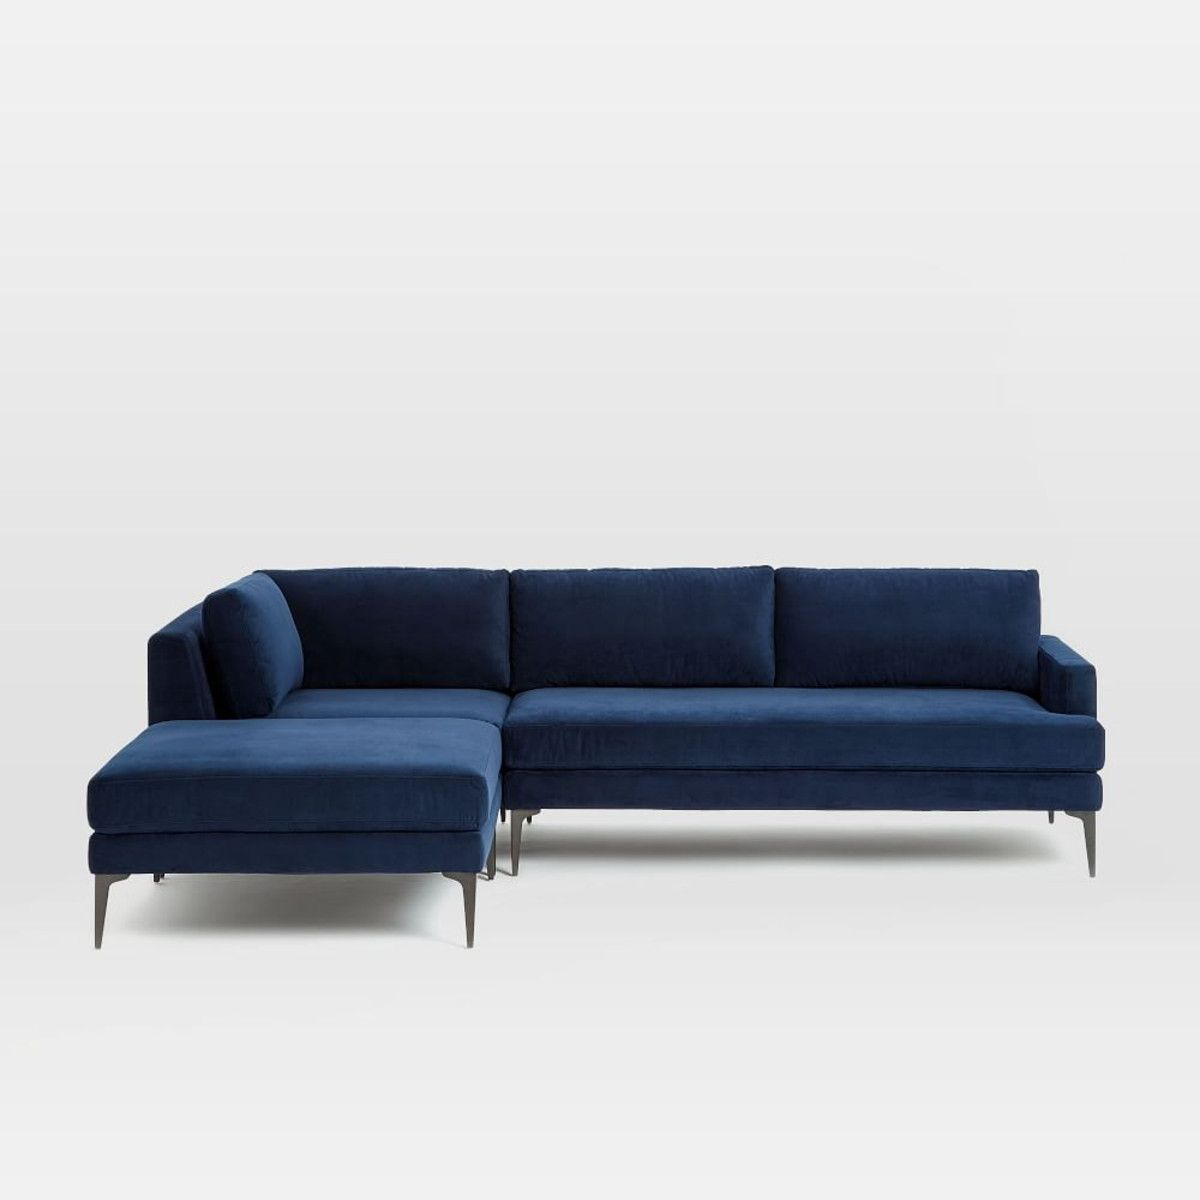 Andes 3-Piece Chaise Sectional - Ink Blue   Couches   Pinterest